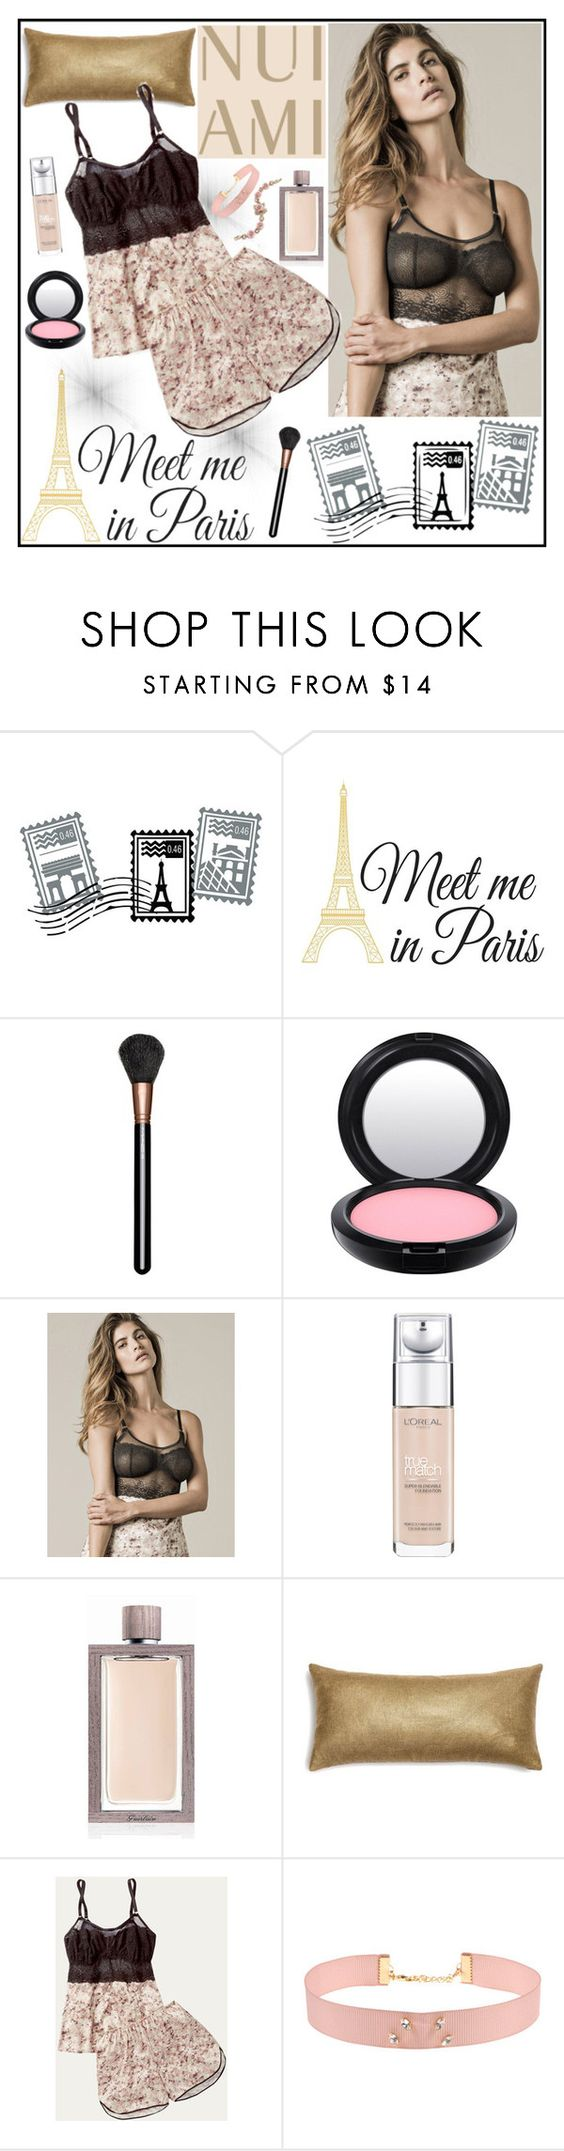 """""""Nui Ami 1"""" by gaby-mil ❤ liked on Polyvore featuring Dot & Bo, WallPops, MAC Cosmetics, L'Oréal Paris, Guerlain, Johnny Loves Rosie, Marchesa, lingerie and nuiami"""